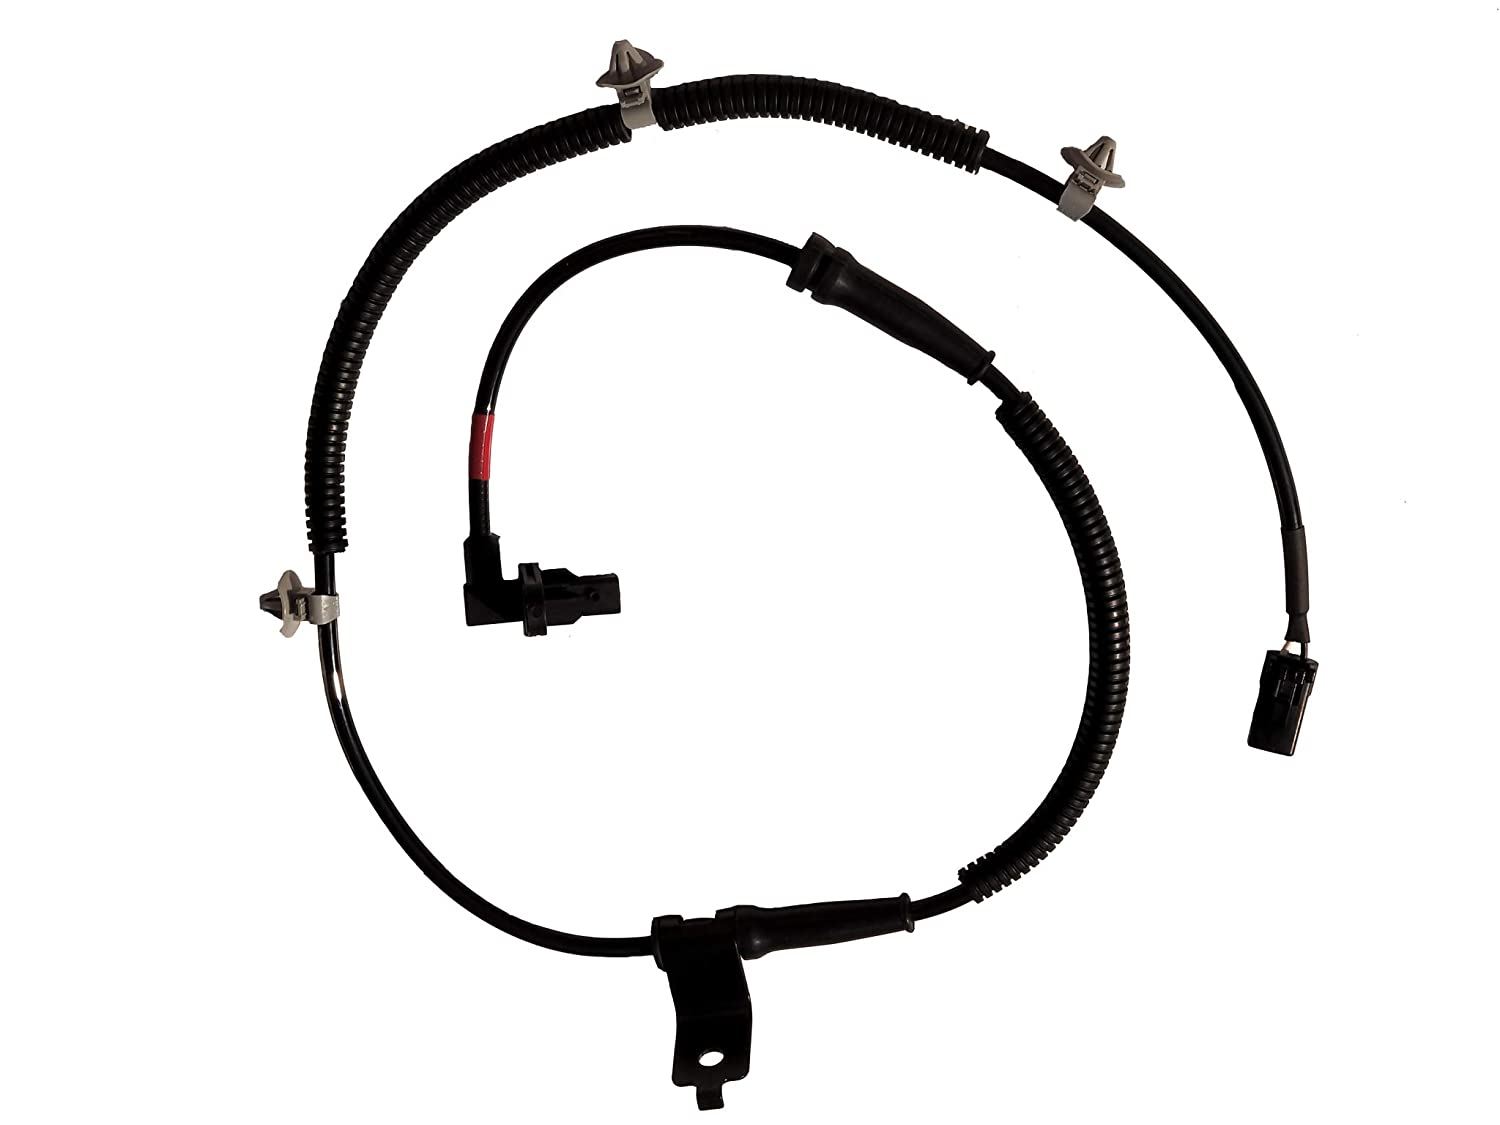 gussin ABS022 ABS Wheel Speed Sensor OE#956712B000 for Hyundai Santa FE 2007-2009 Position: Front Right